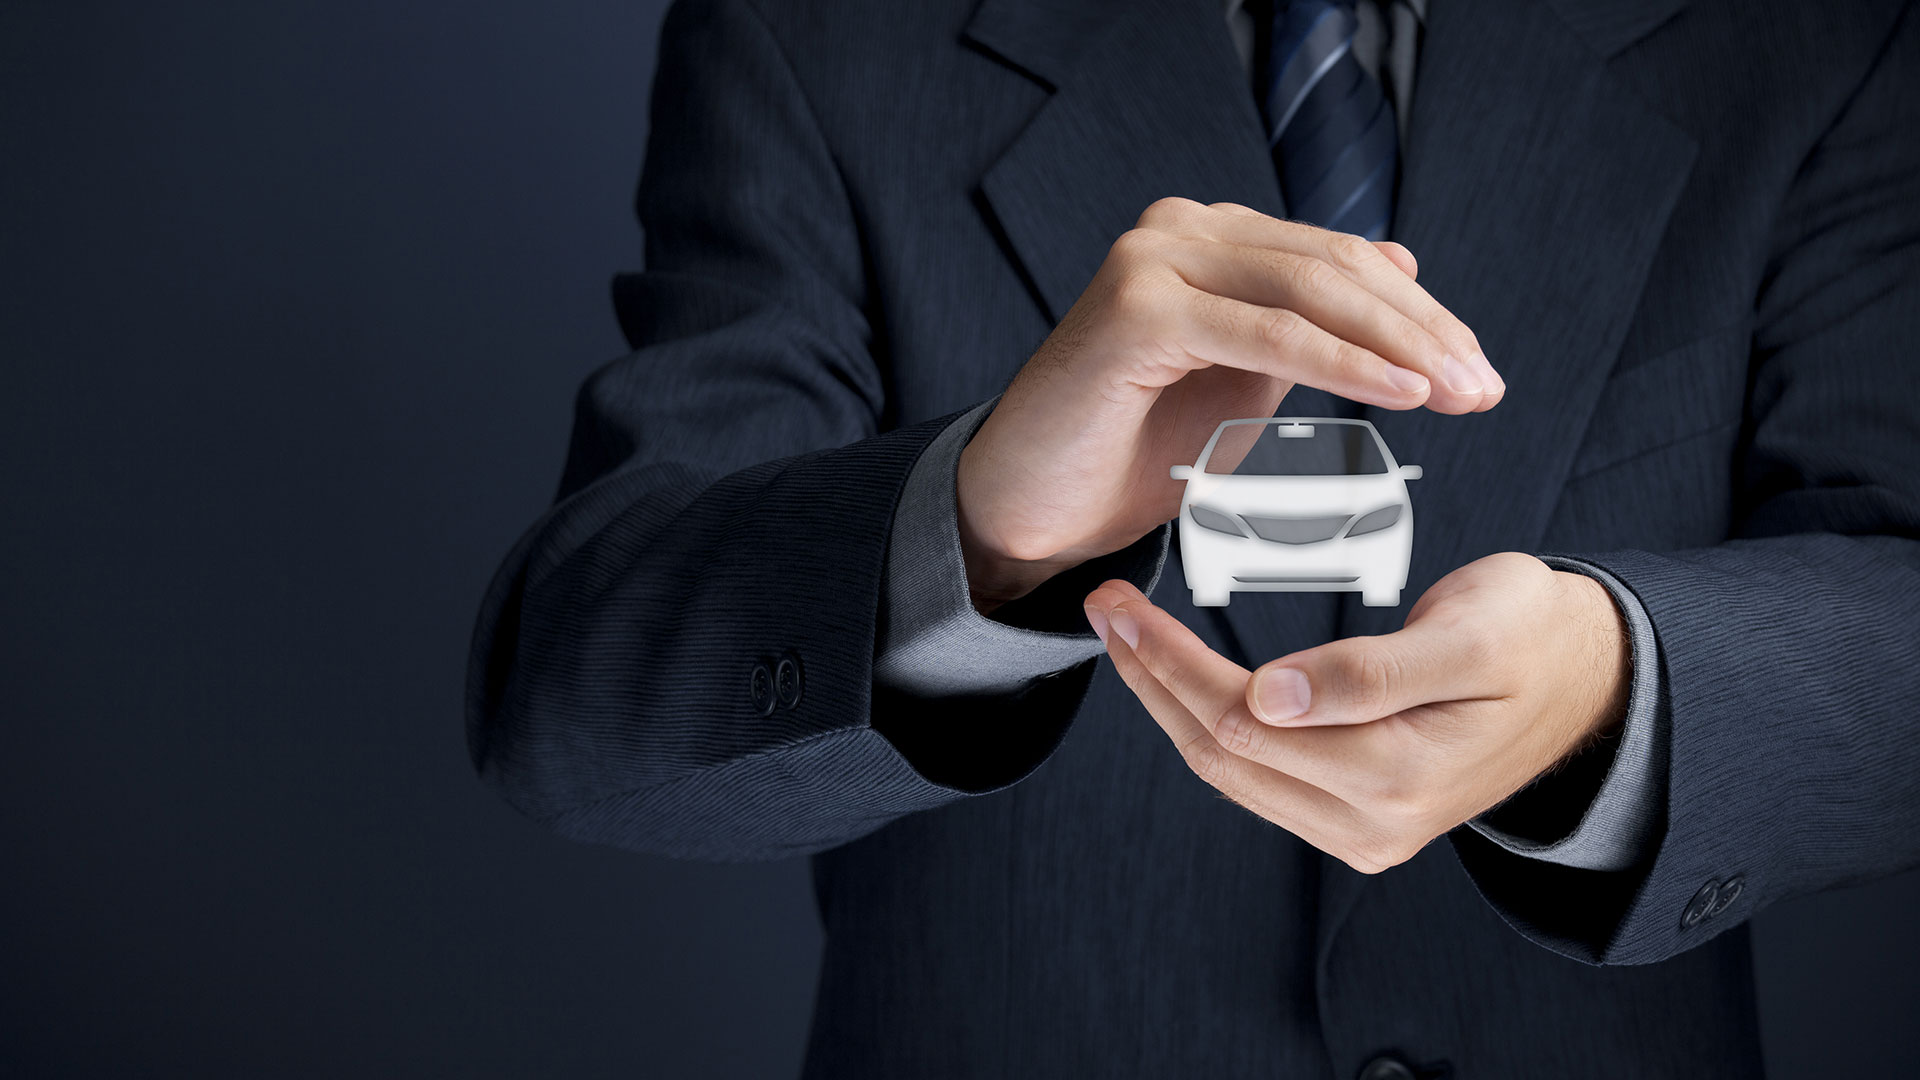 Everything You Ever Wanted To Know About Cholamandalam Car Insurance